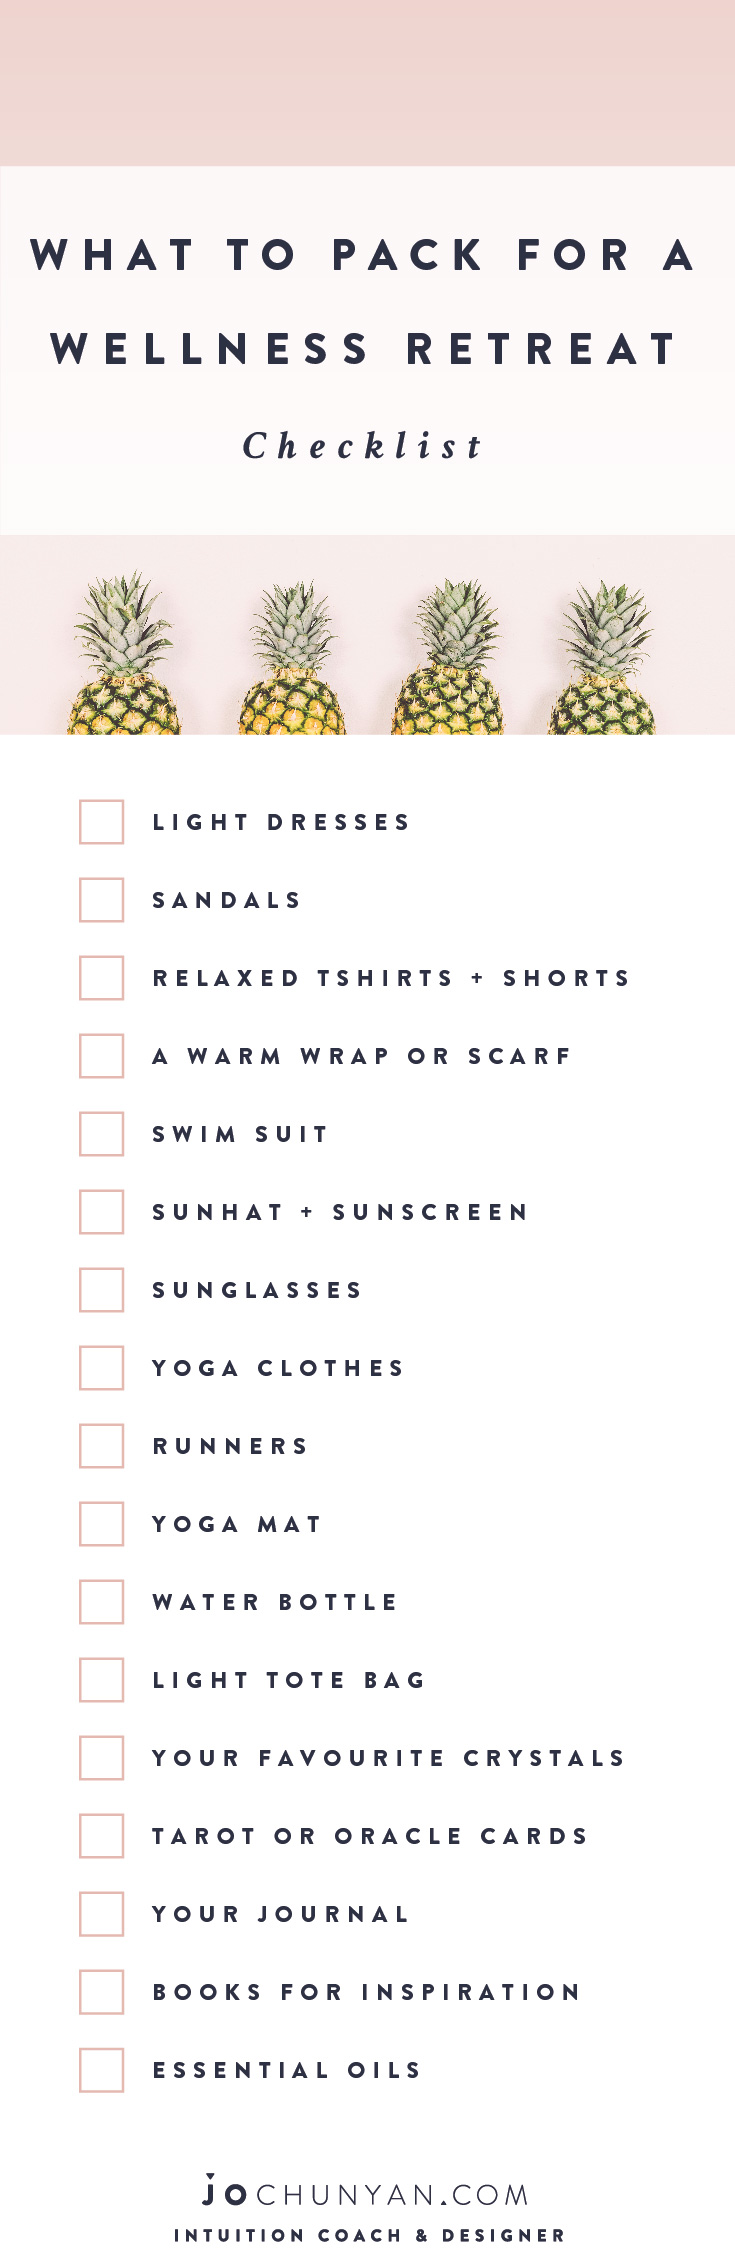 Pinterest - What To Pack For A Wellness Retreat Checklist